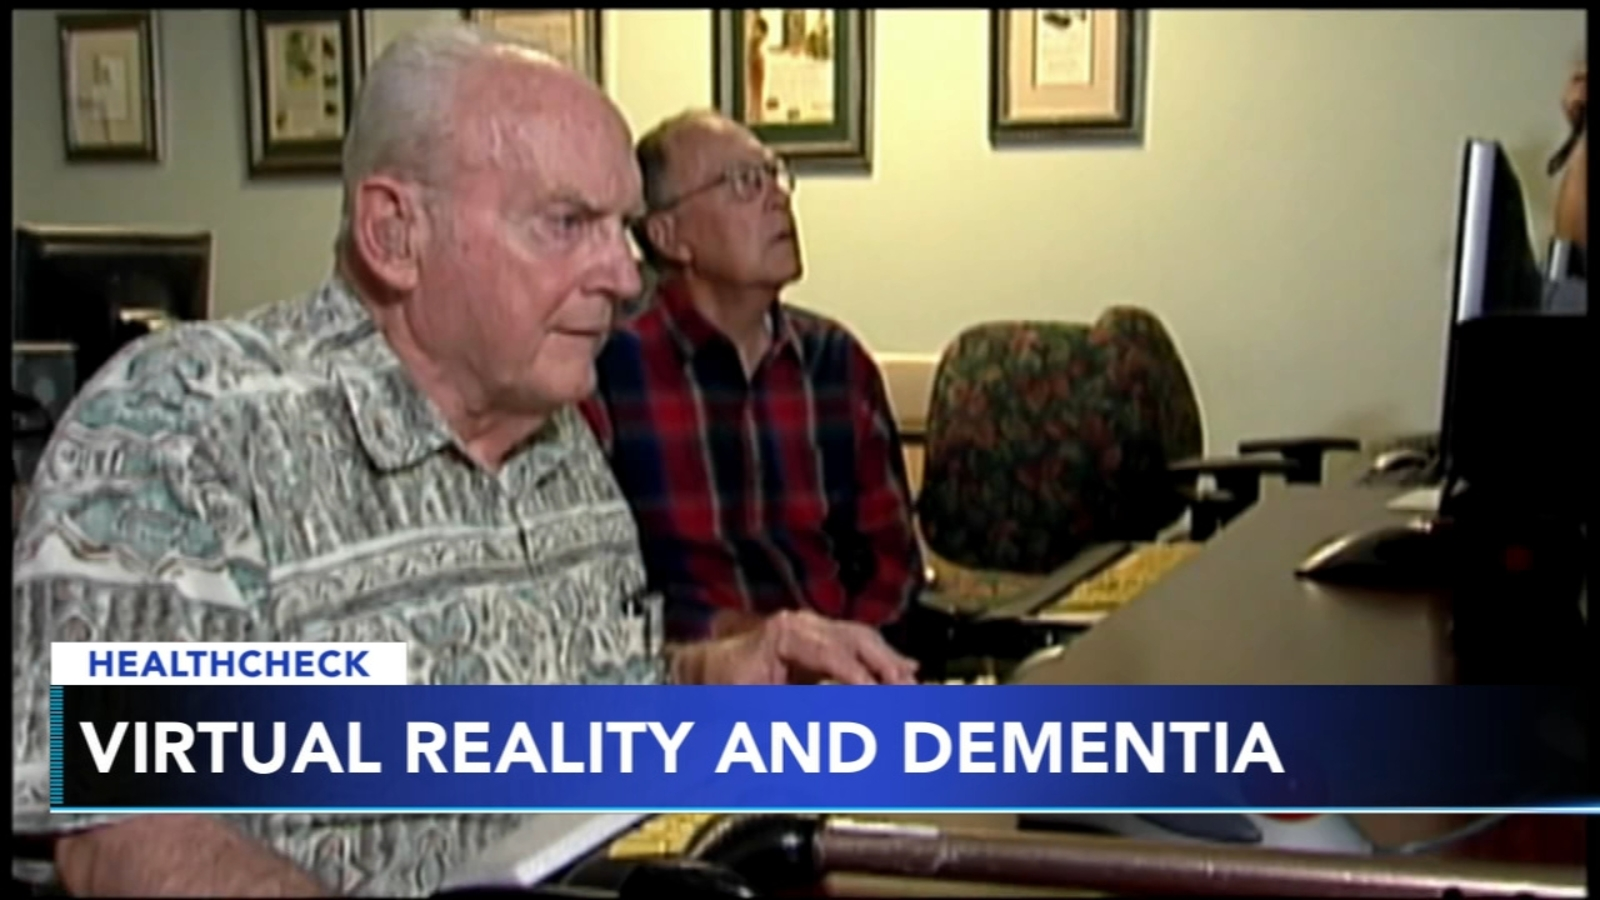 Virtual reality could help dementia patients, study says